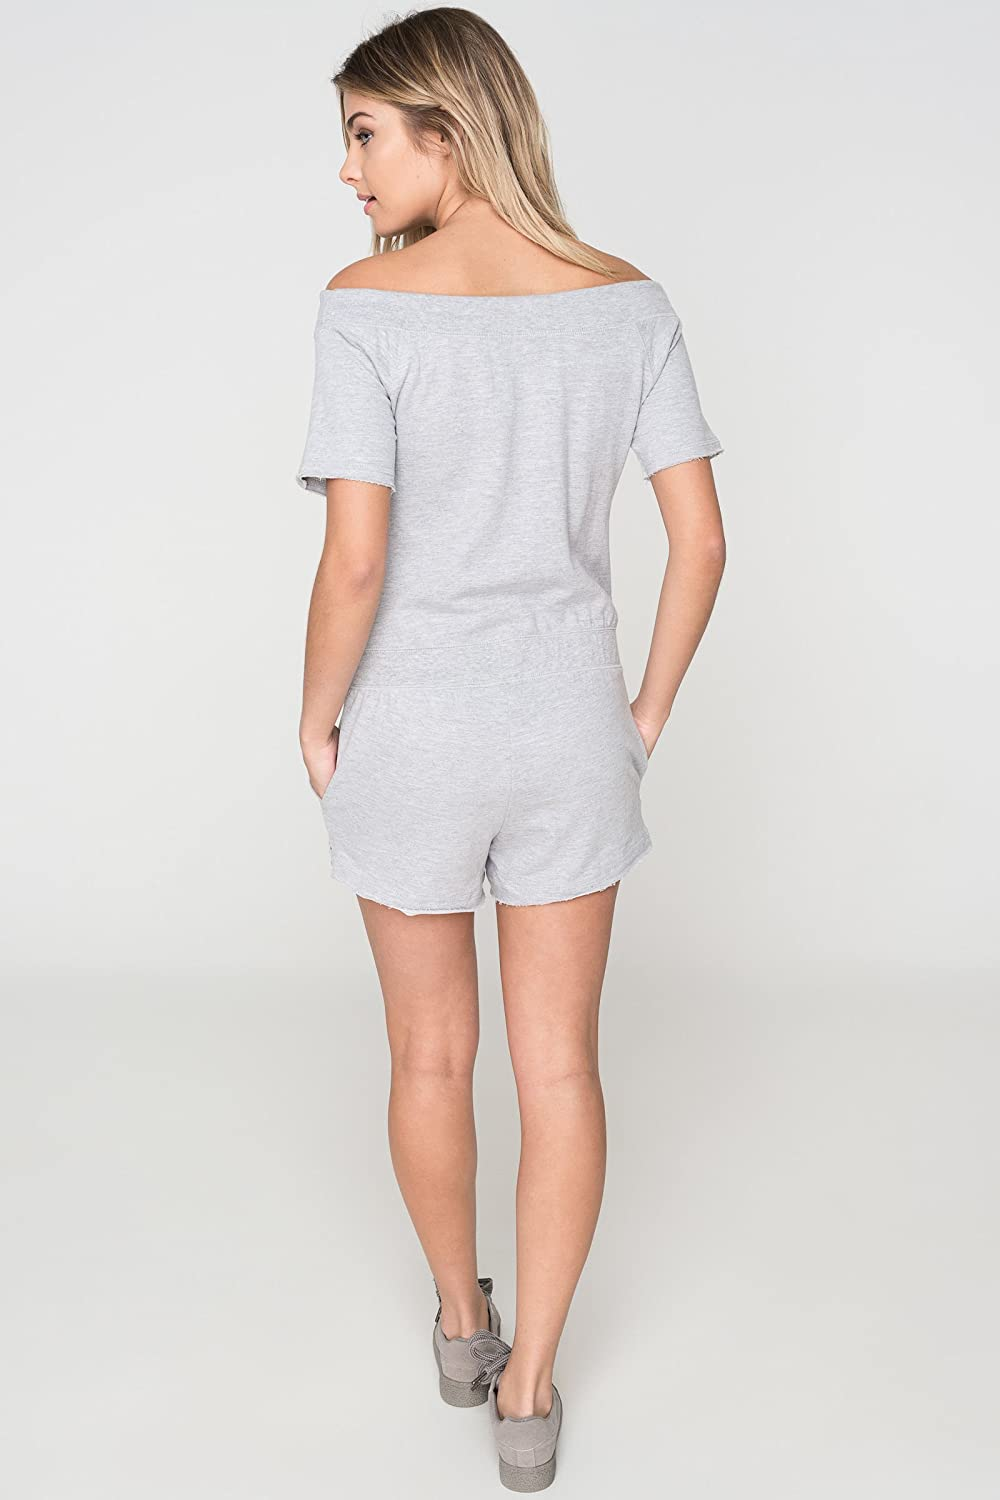 2ff44bb73b37 Ardene Women s - Rompers   Jumpsuits - Off Shoulder Sweats Romper Extra  Small -(8A-AP01003)  Amazon.co.uk  Clothing